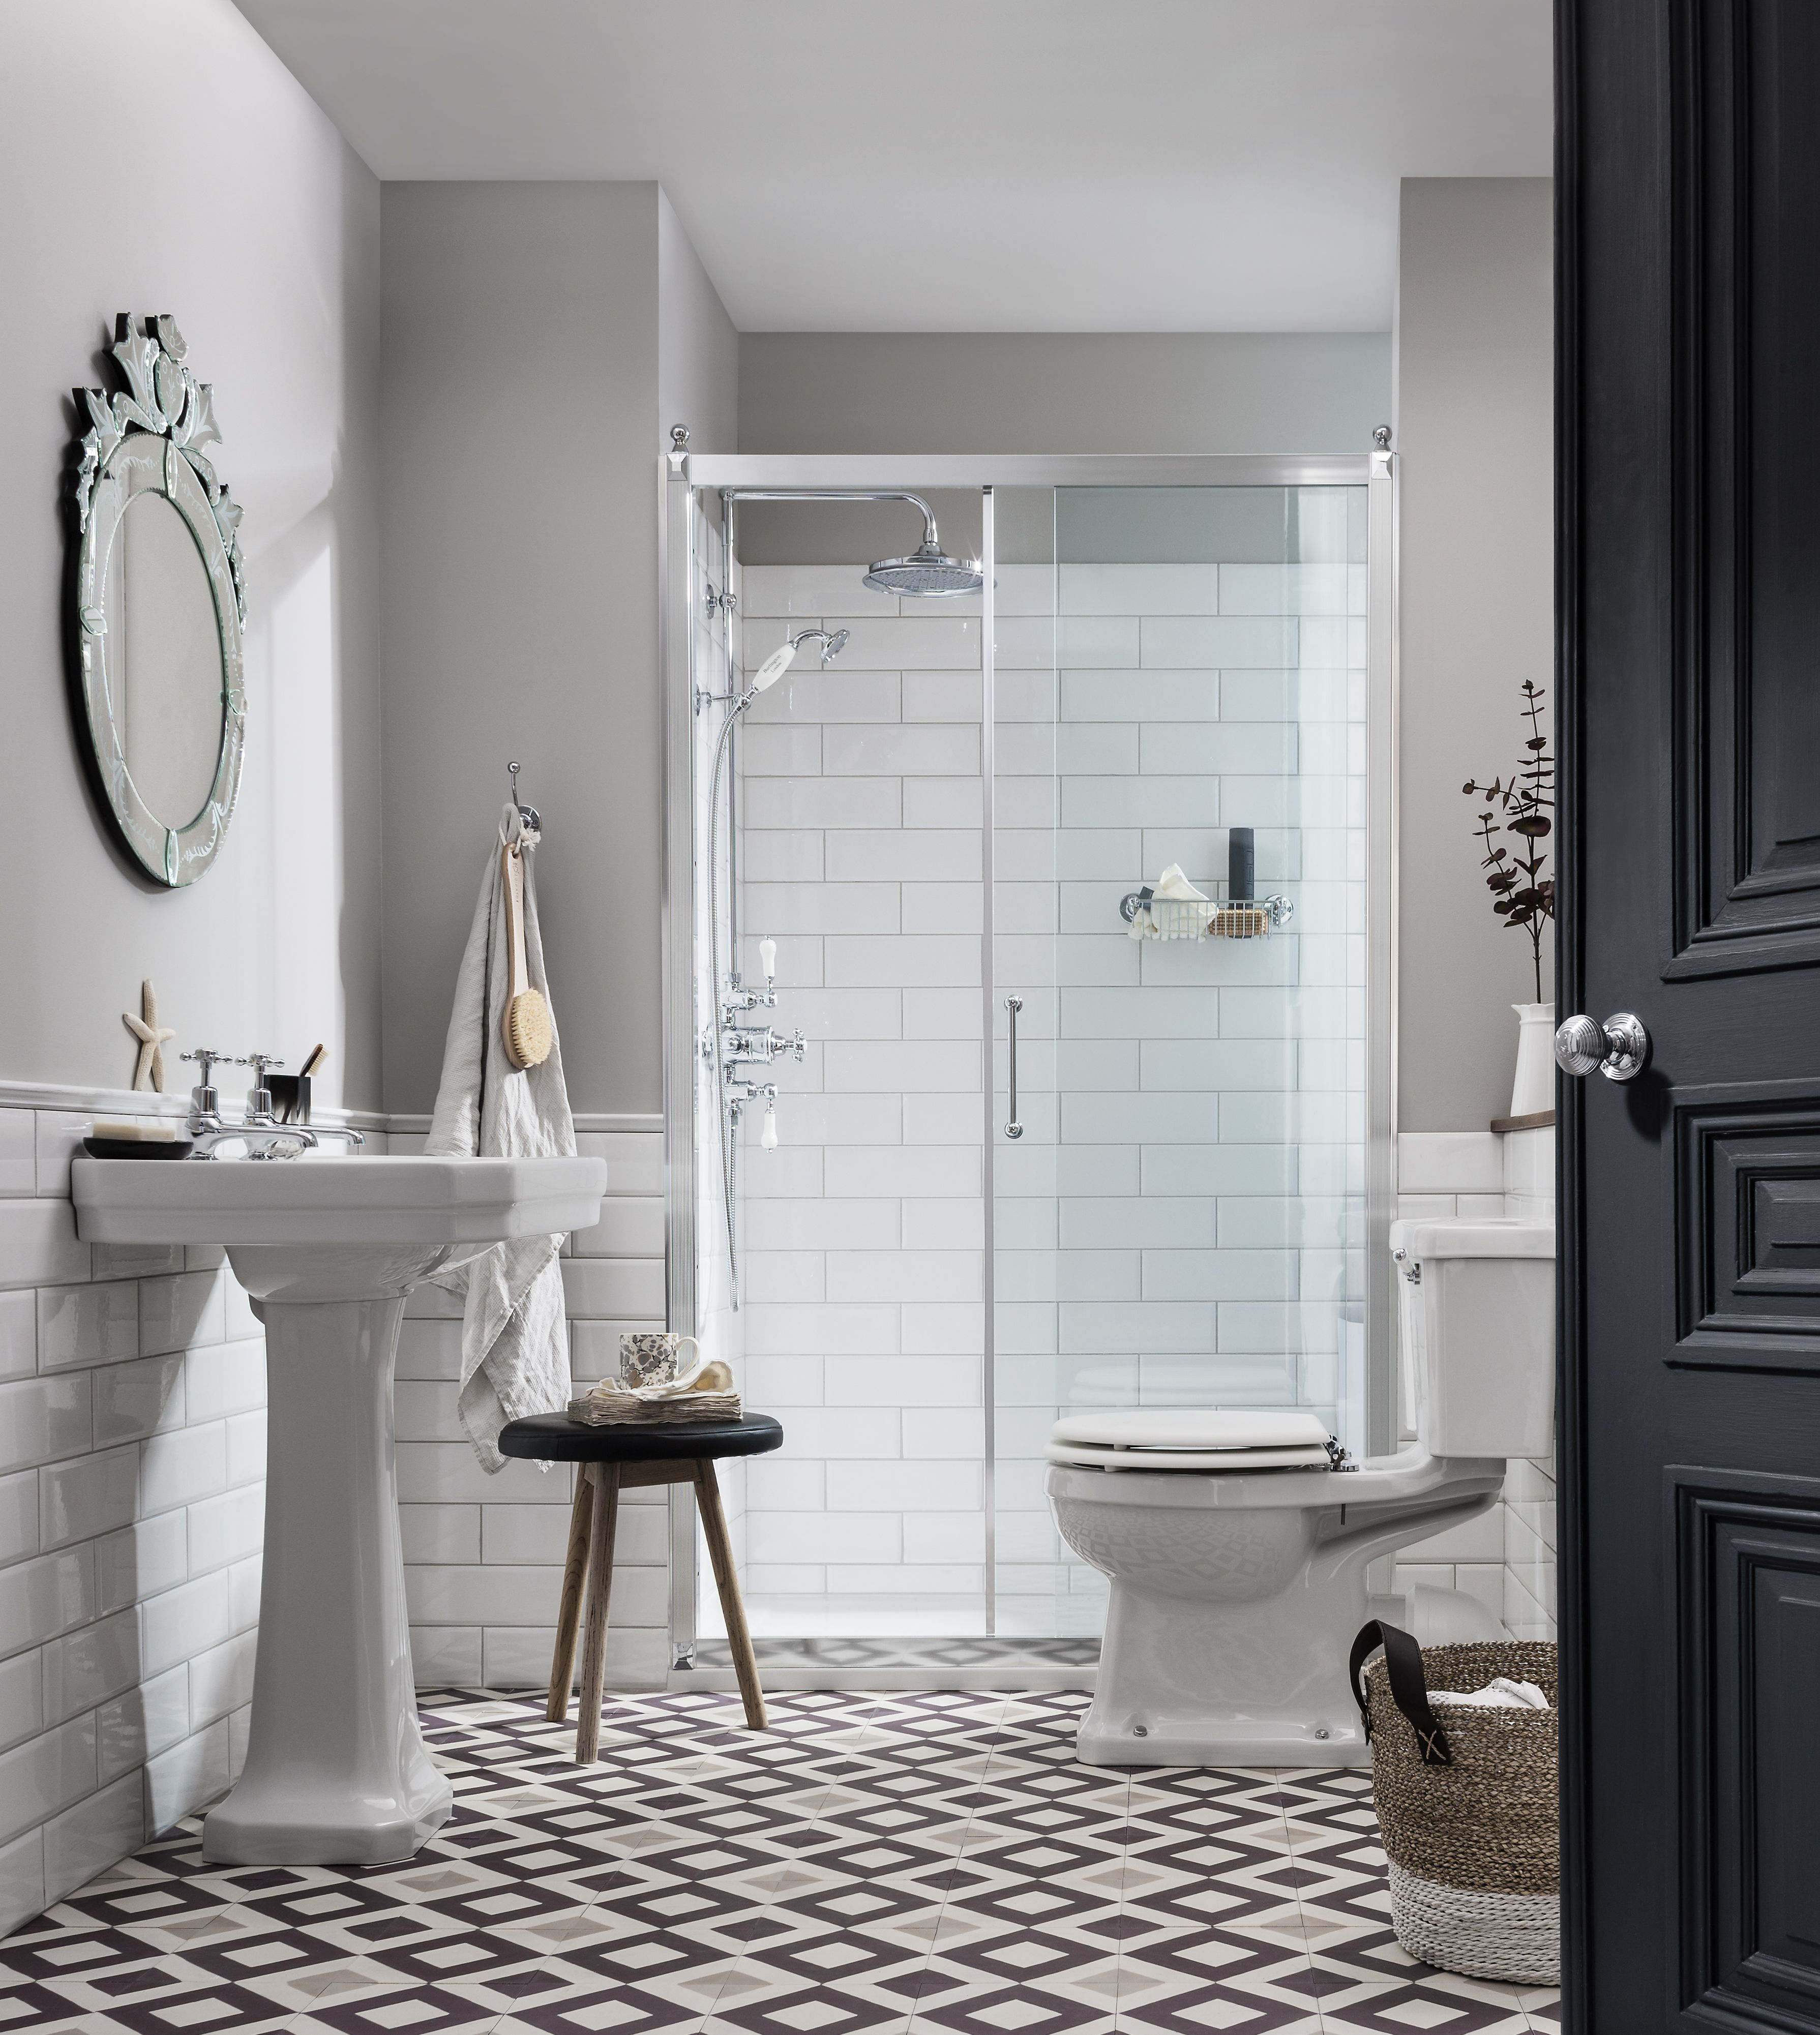 Achieve The Perfect Uptown Bathroom For Less With Burlington Bathrooms On Now